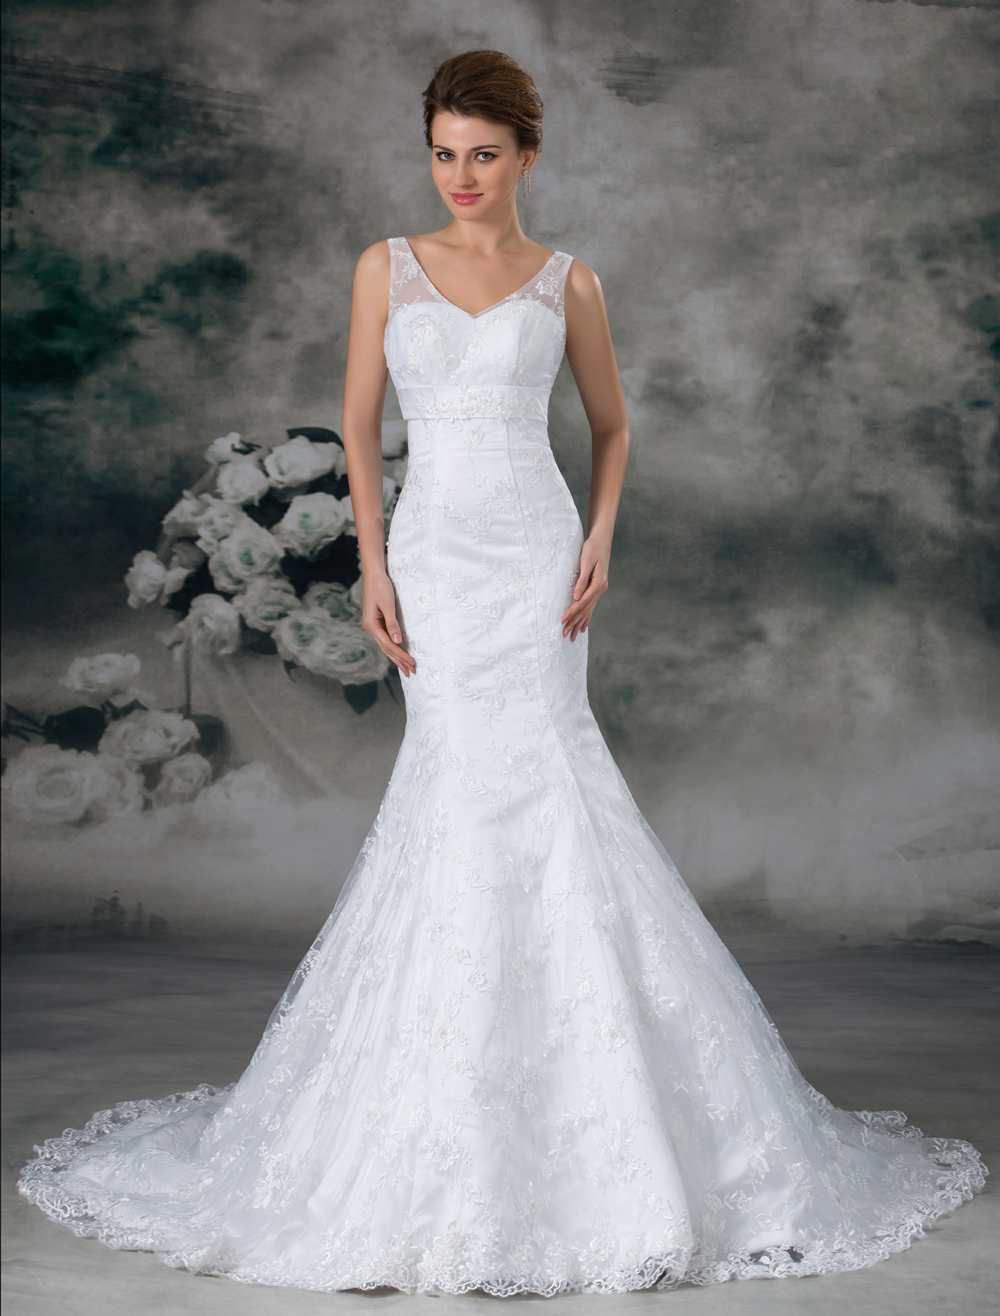 White Mermaid Off-The-Shoulder Lace Wedding Dress For Bride